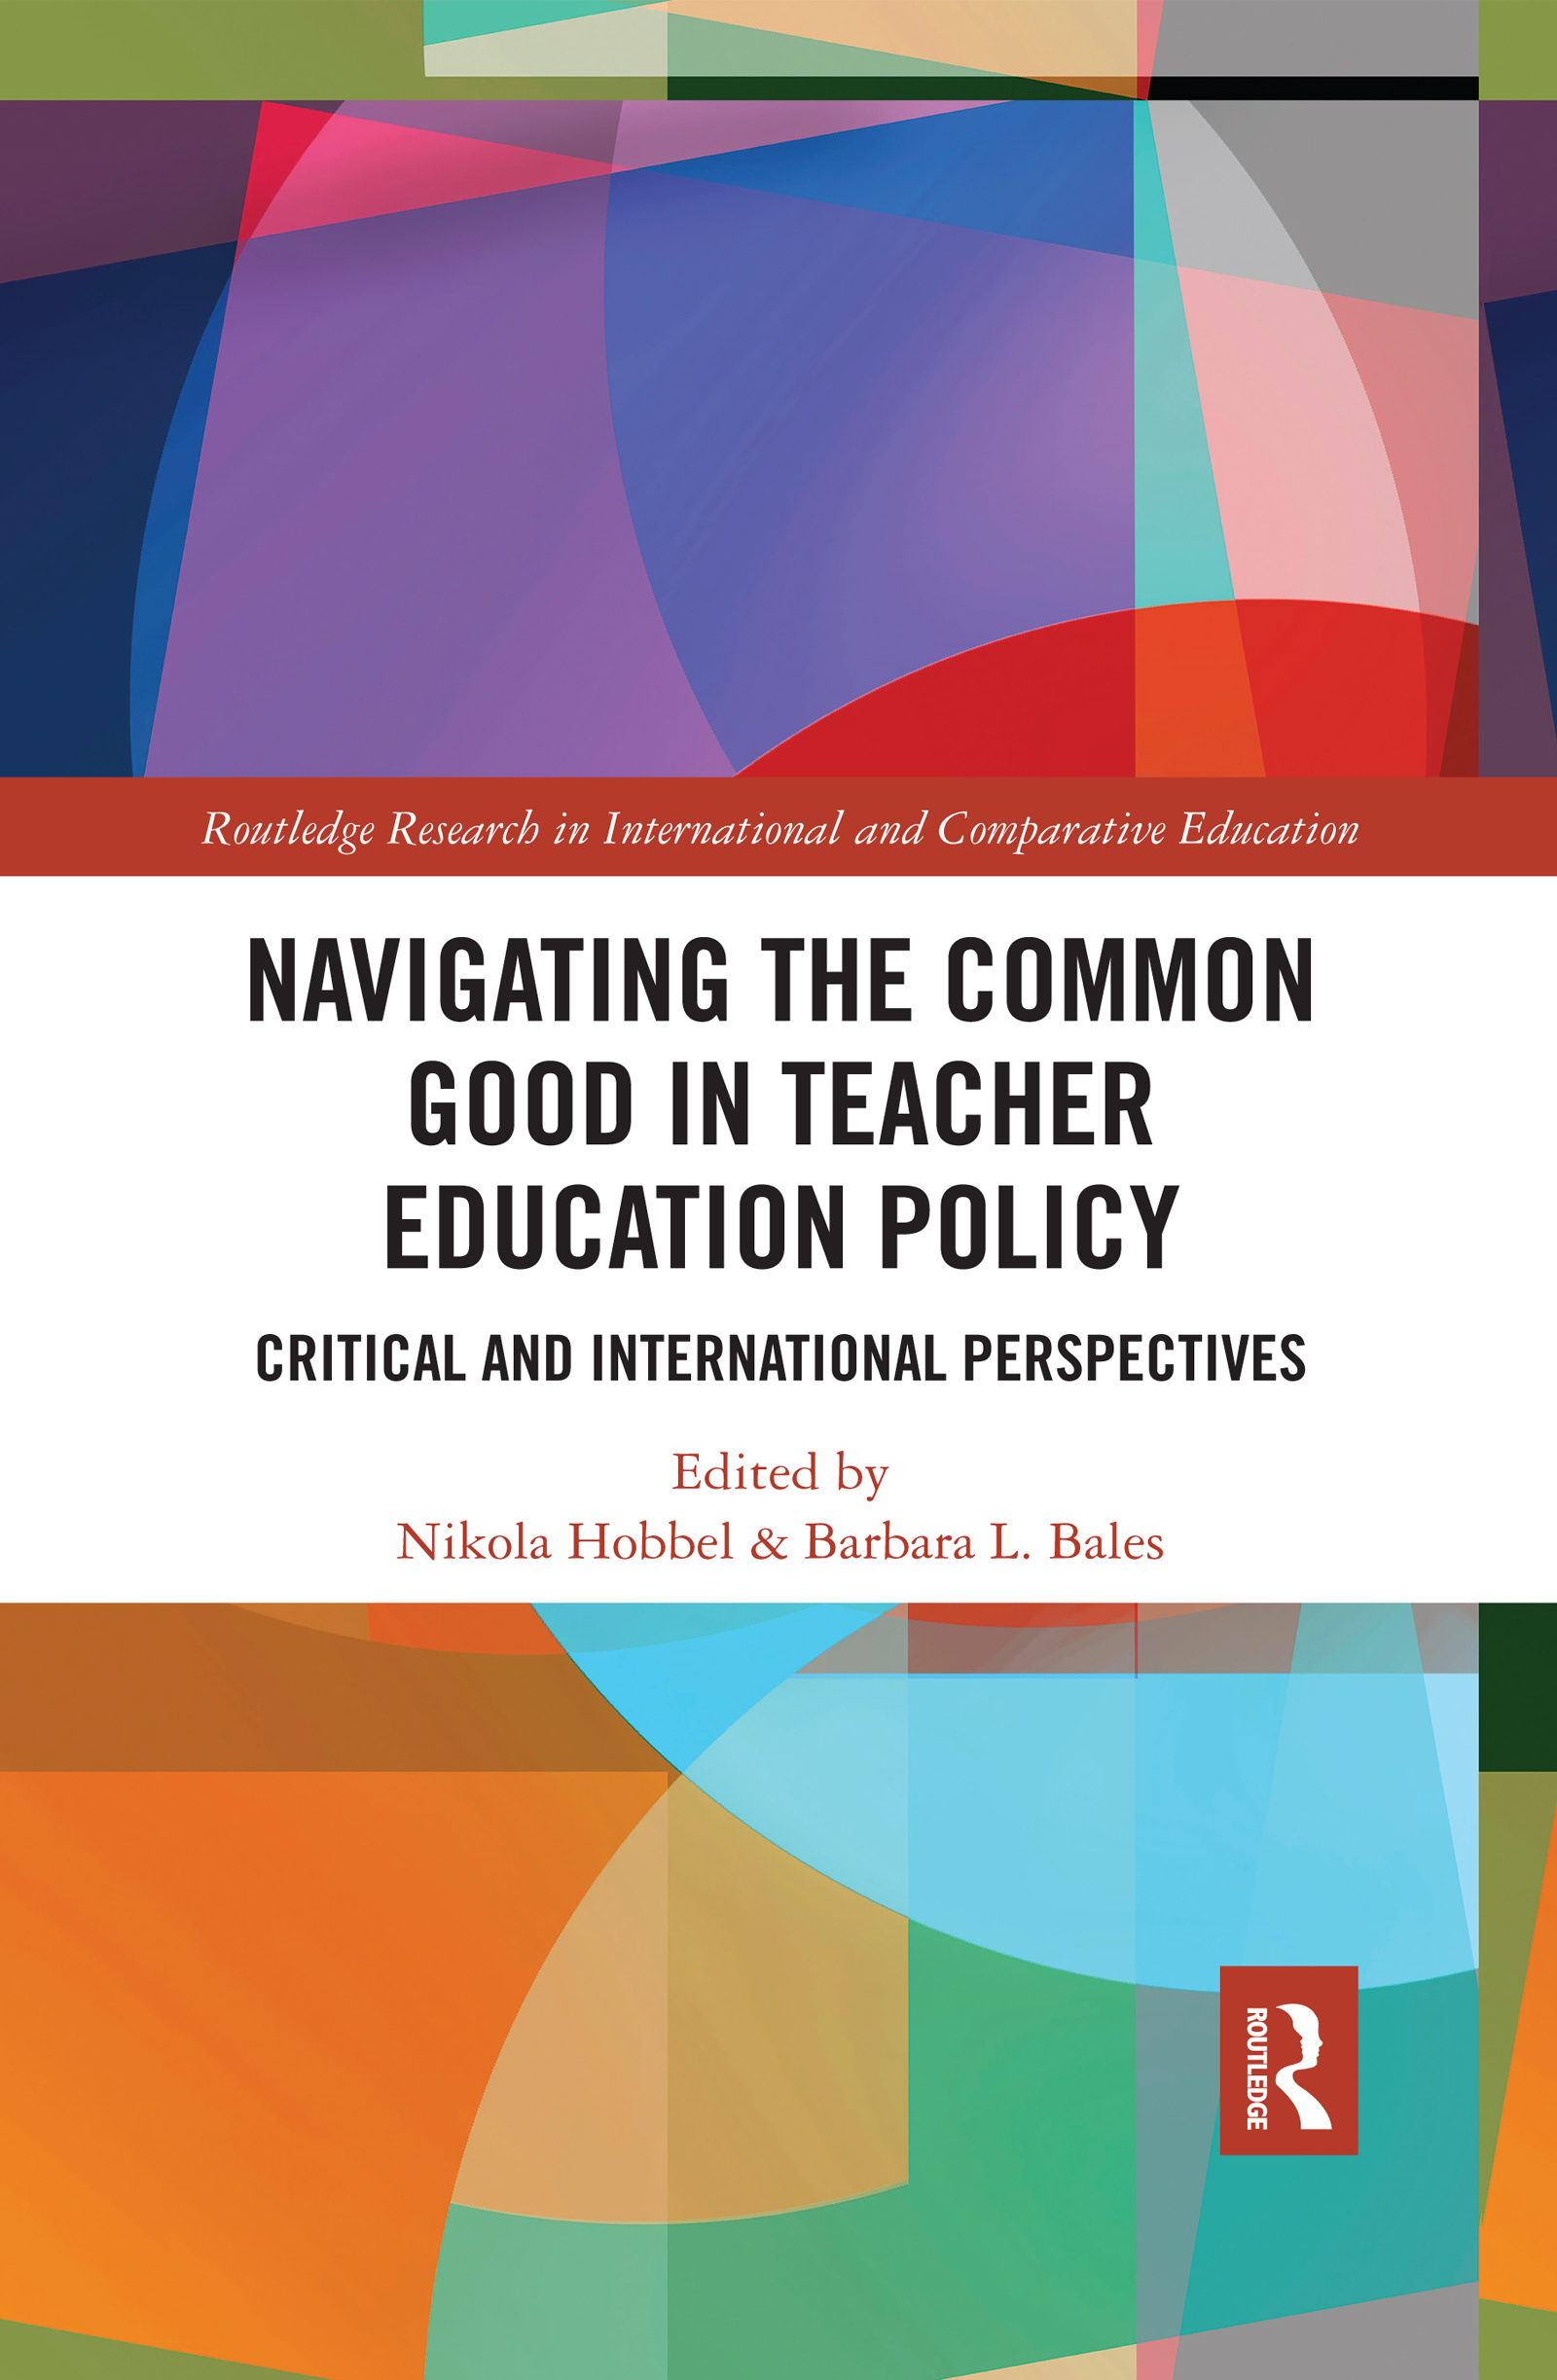 Navigating the Common Good in Teacher Education Policy